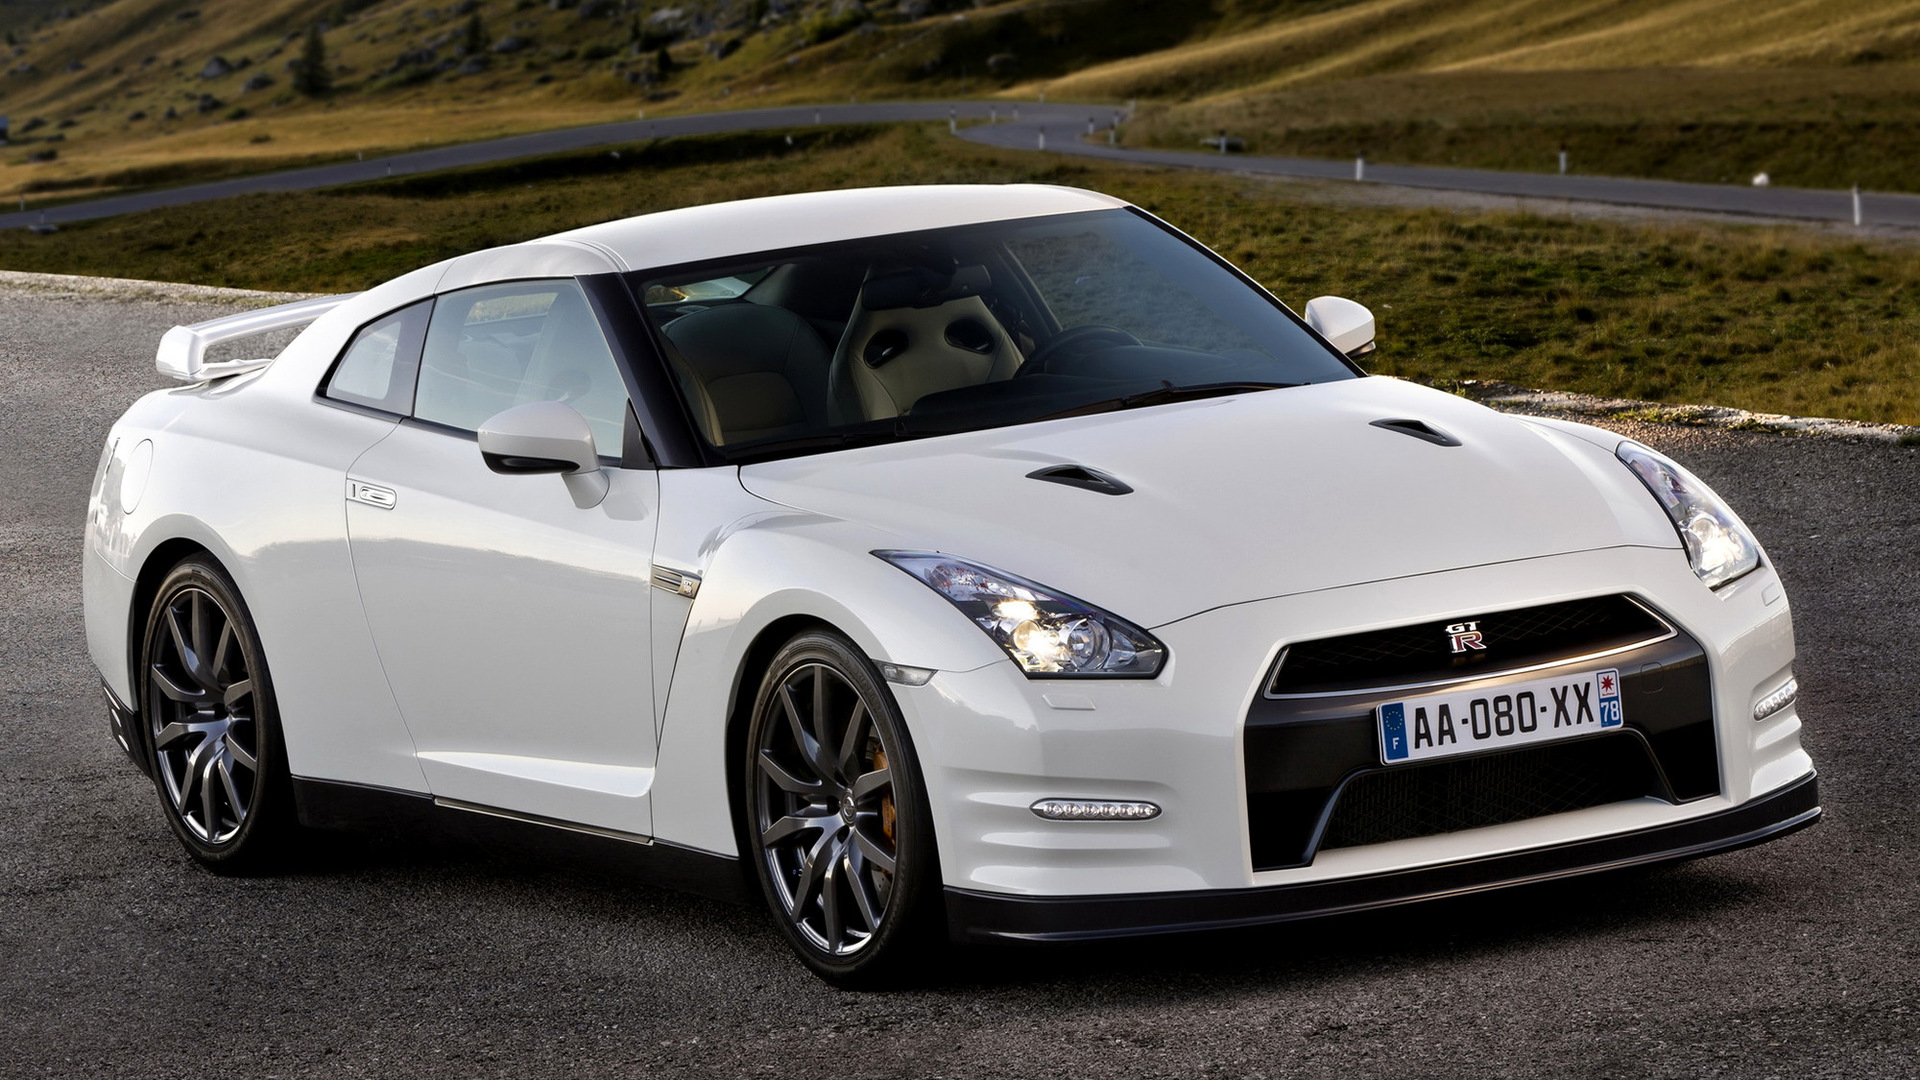 Nissan Gtr Car Hd Wallpapers 2010 Nissan Gt R Black Edition Wallpapers And Hd Images